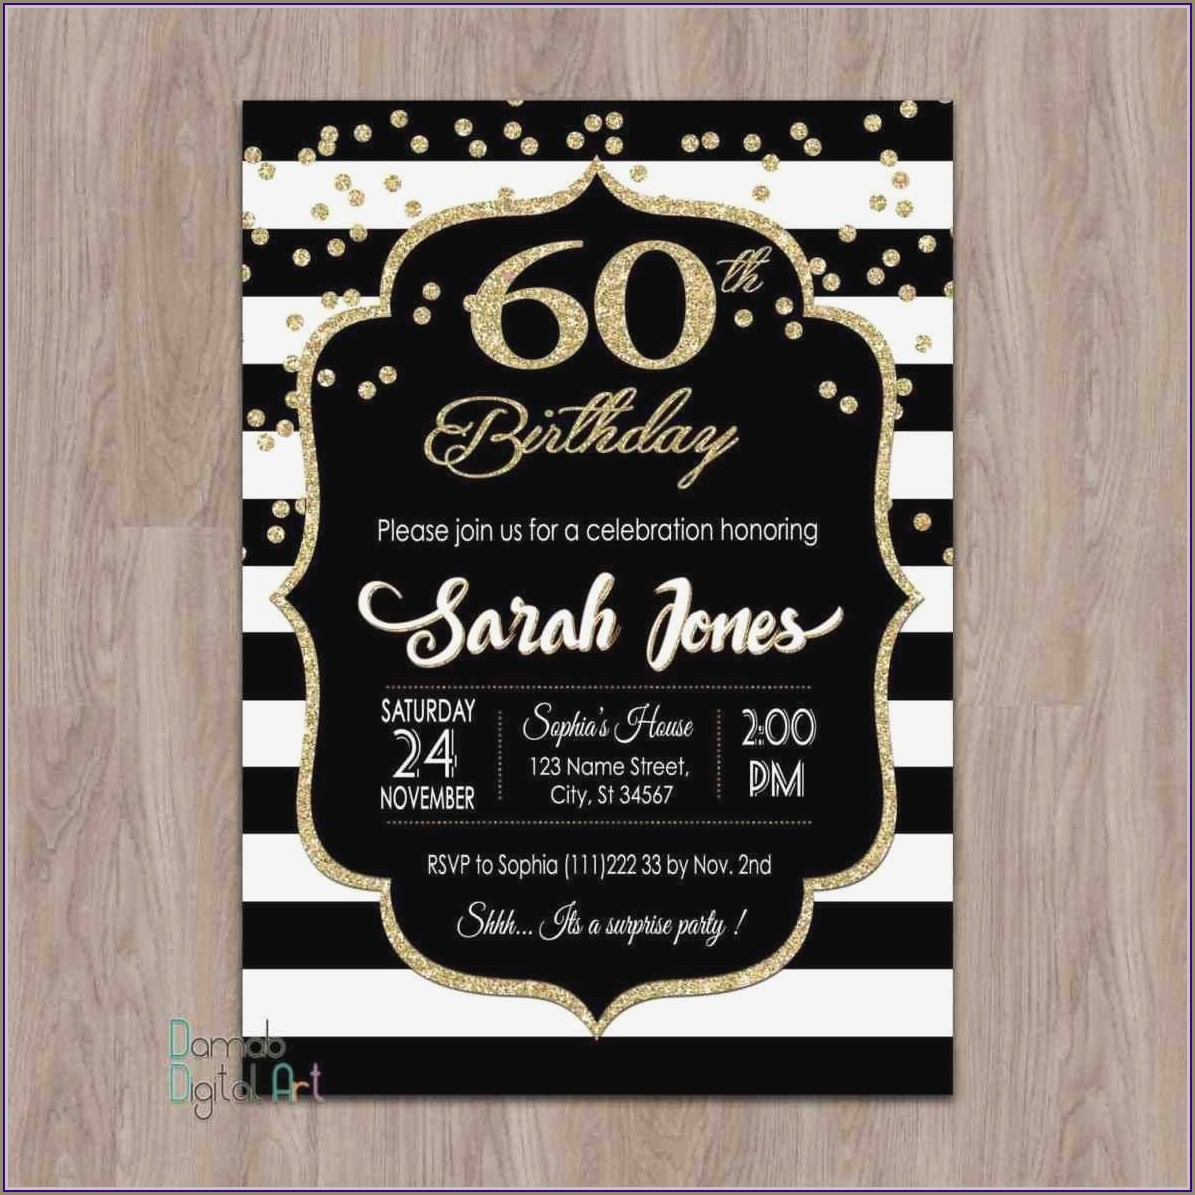 Examples Of 60th Birthday Invitations